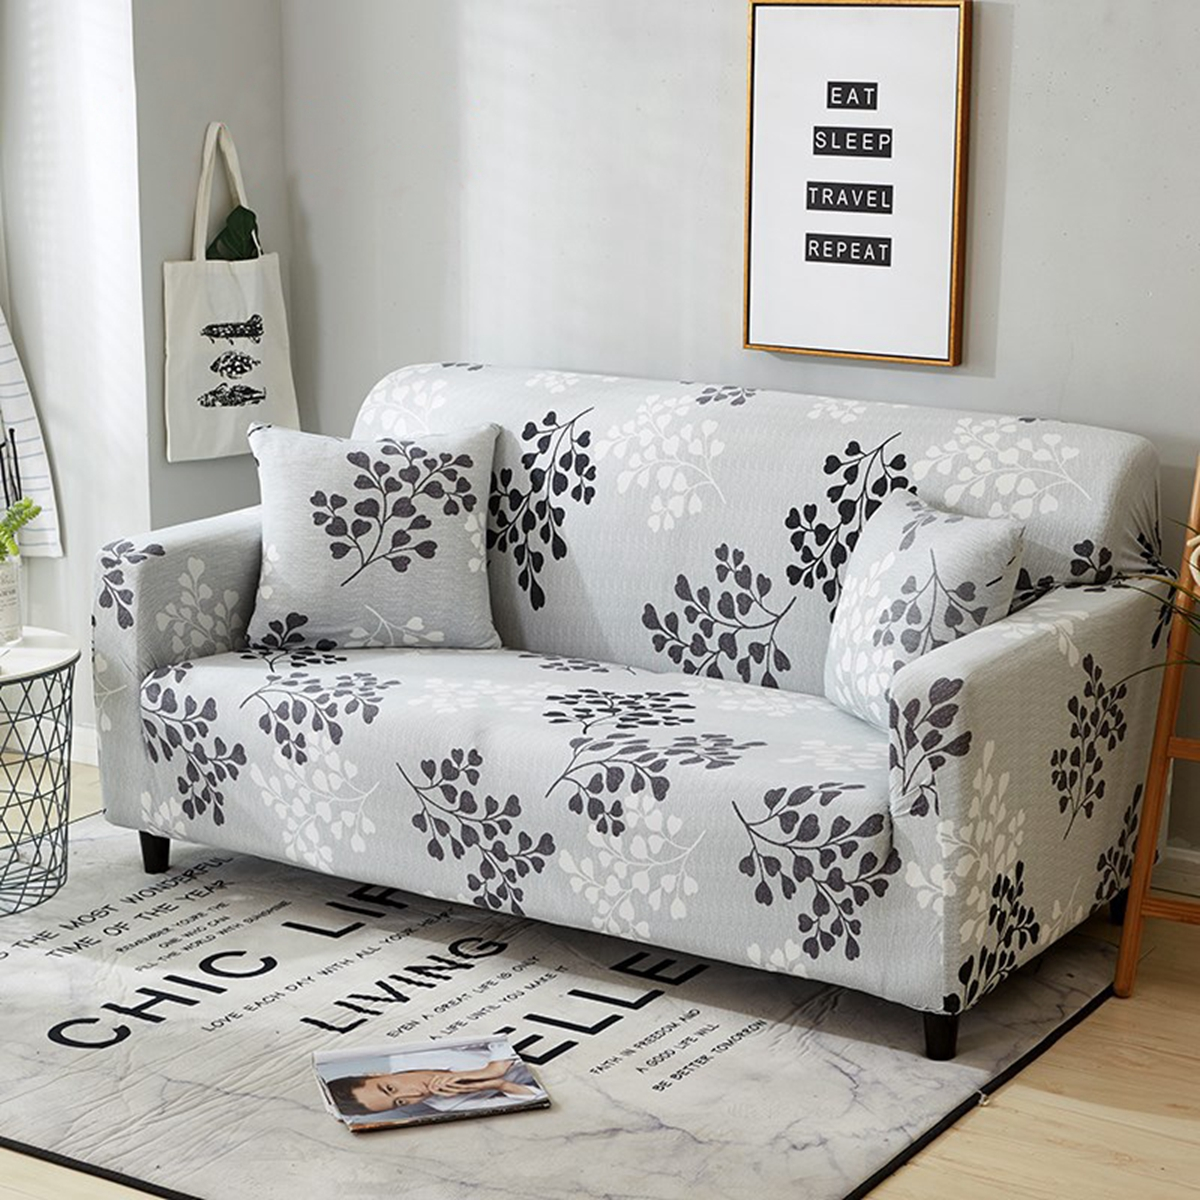 Tremendous Details About Easy Fit Stretch Couch Sofa Lounge Covers Slipcover 1 2 3 4 Seater Cover Chair Pabps2019 Chair Design Images Pabps2019Com